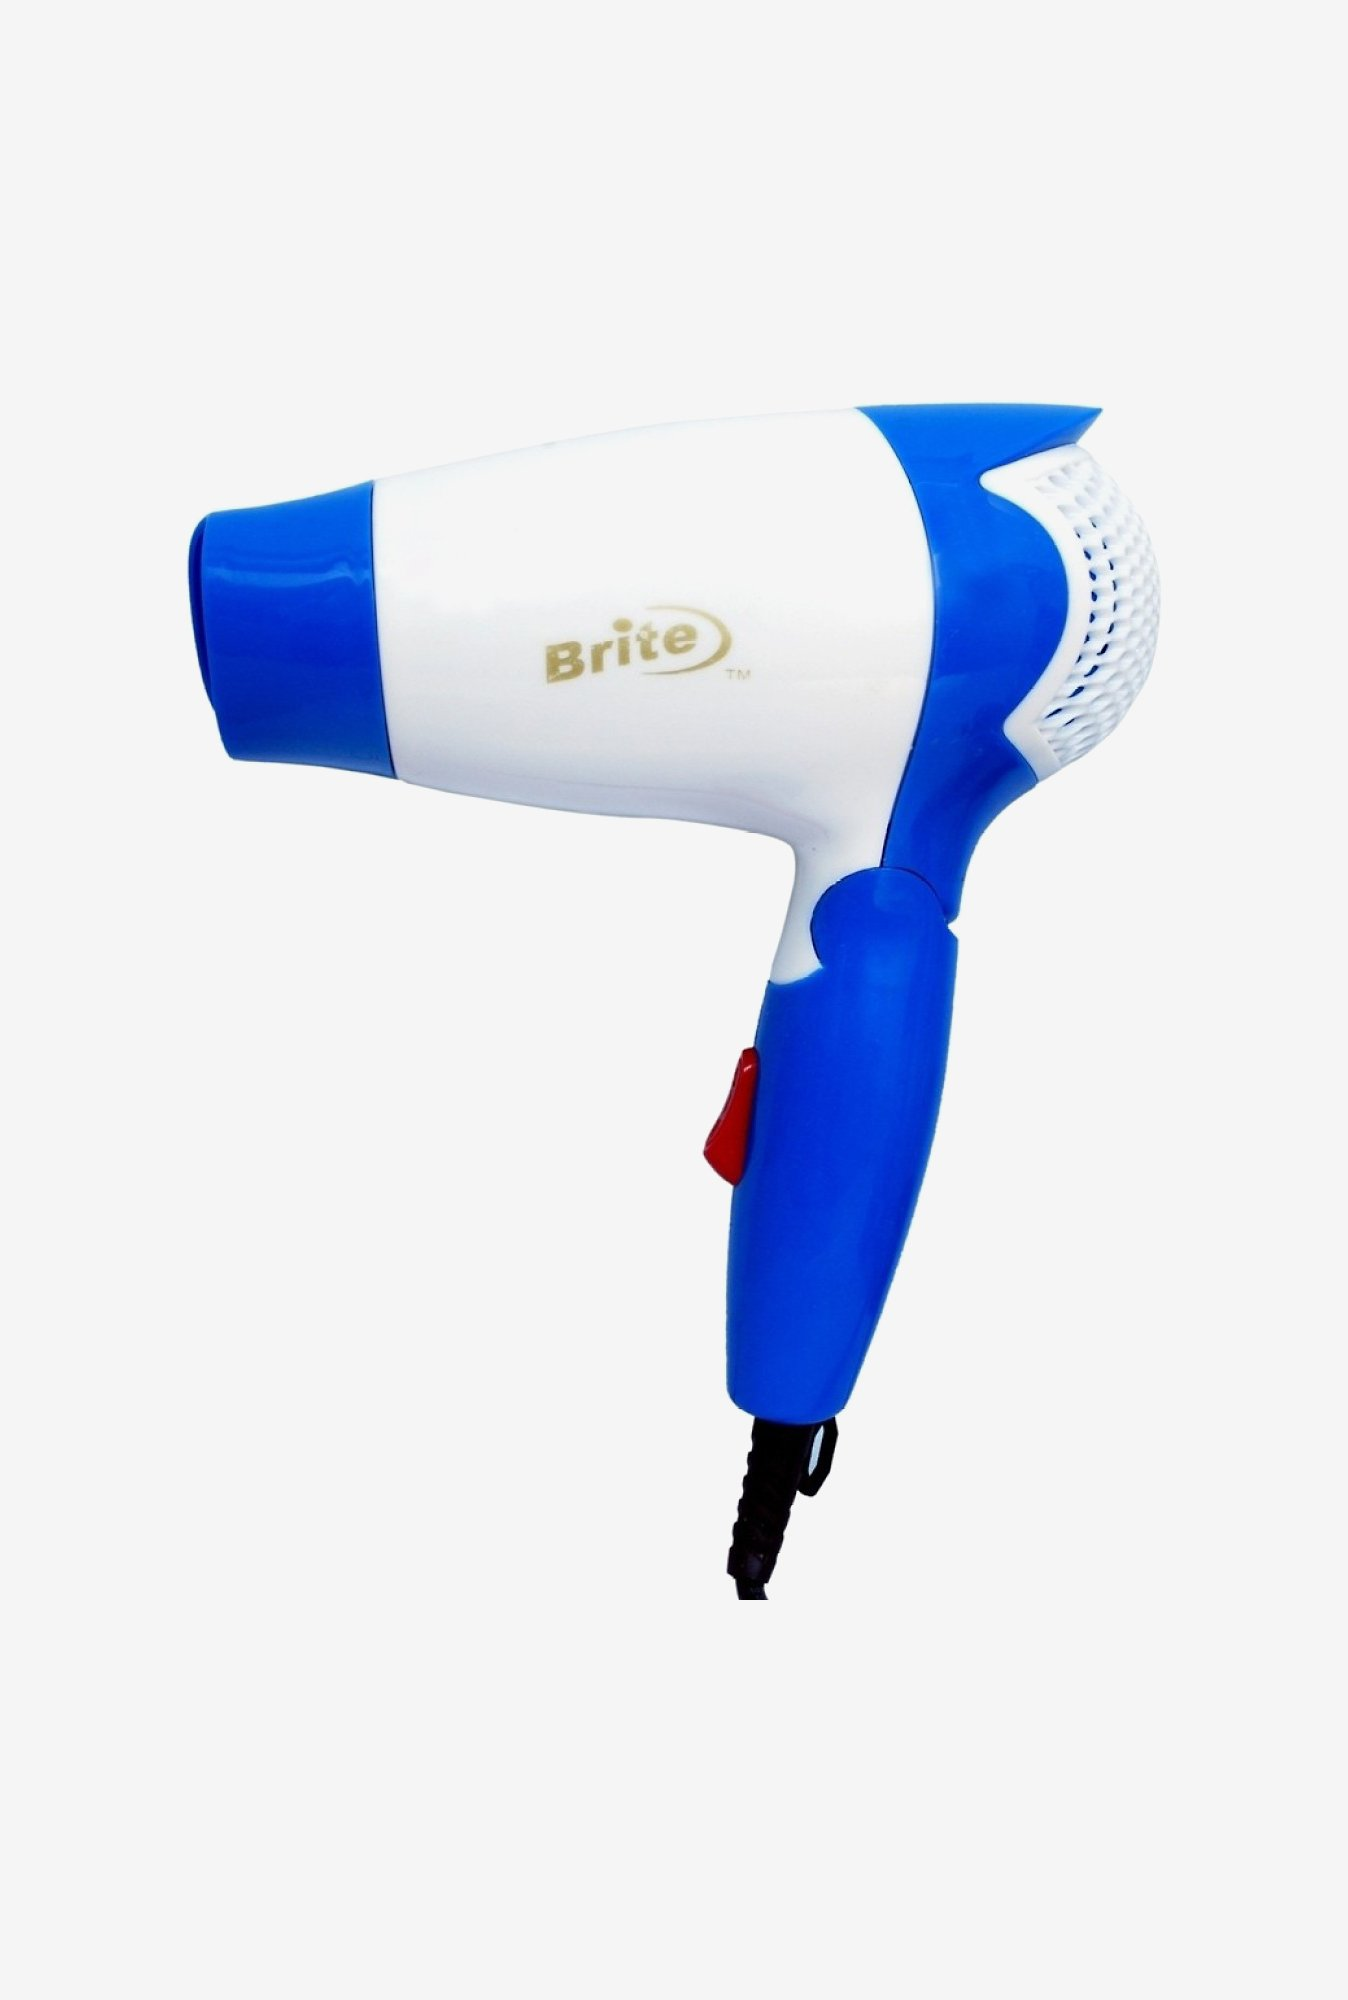 Brite BDH-306 Professional Hair Dryer 1200 W (Blue)